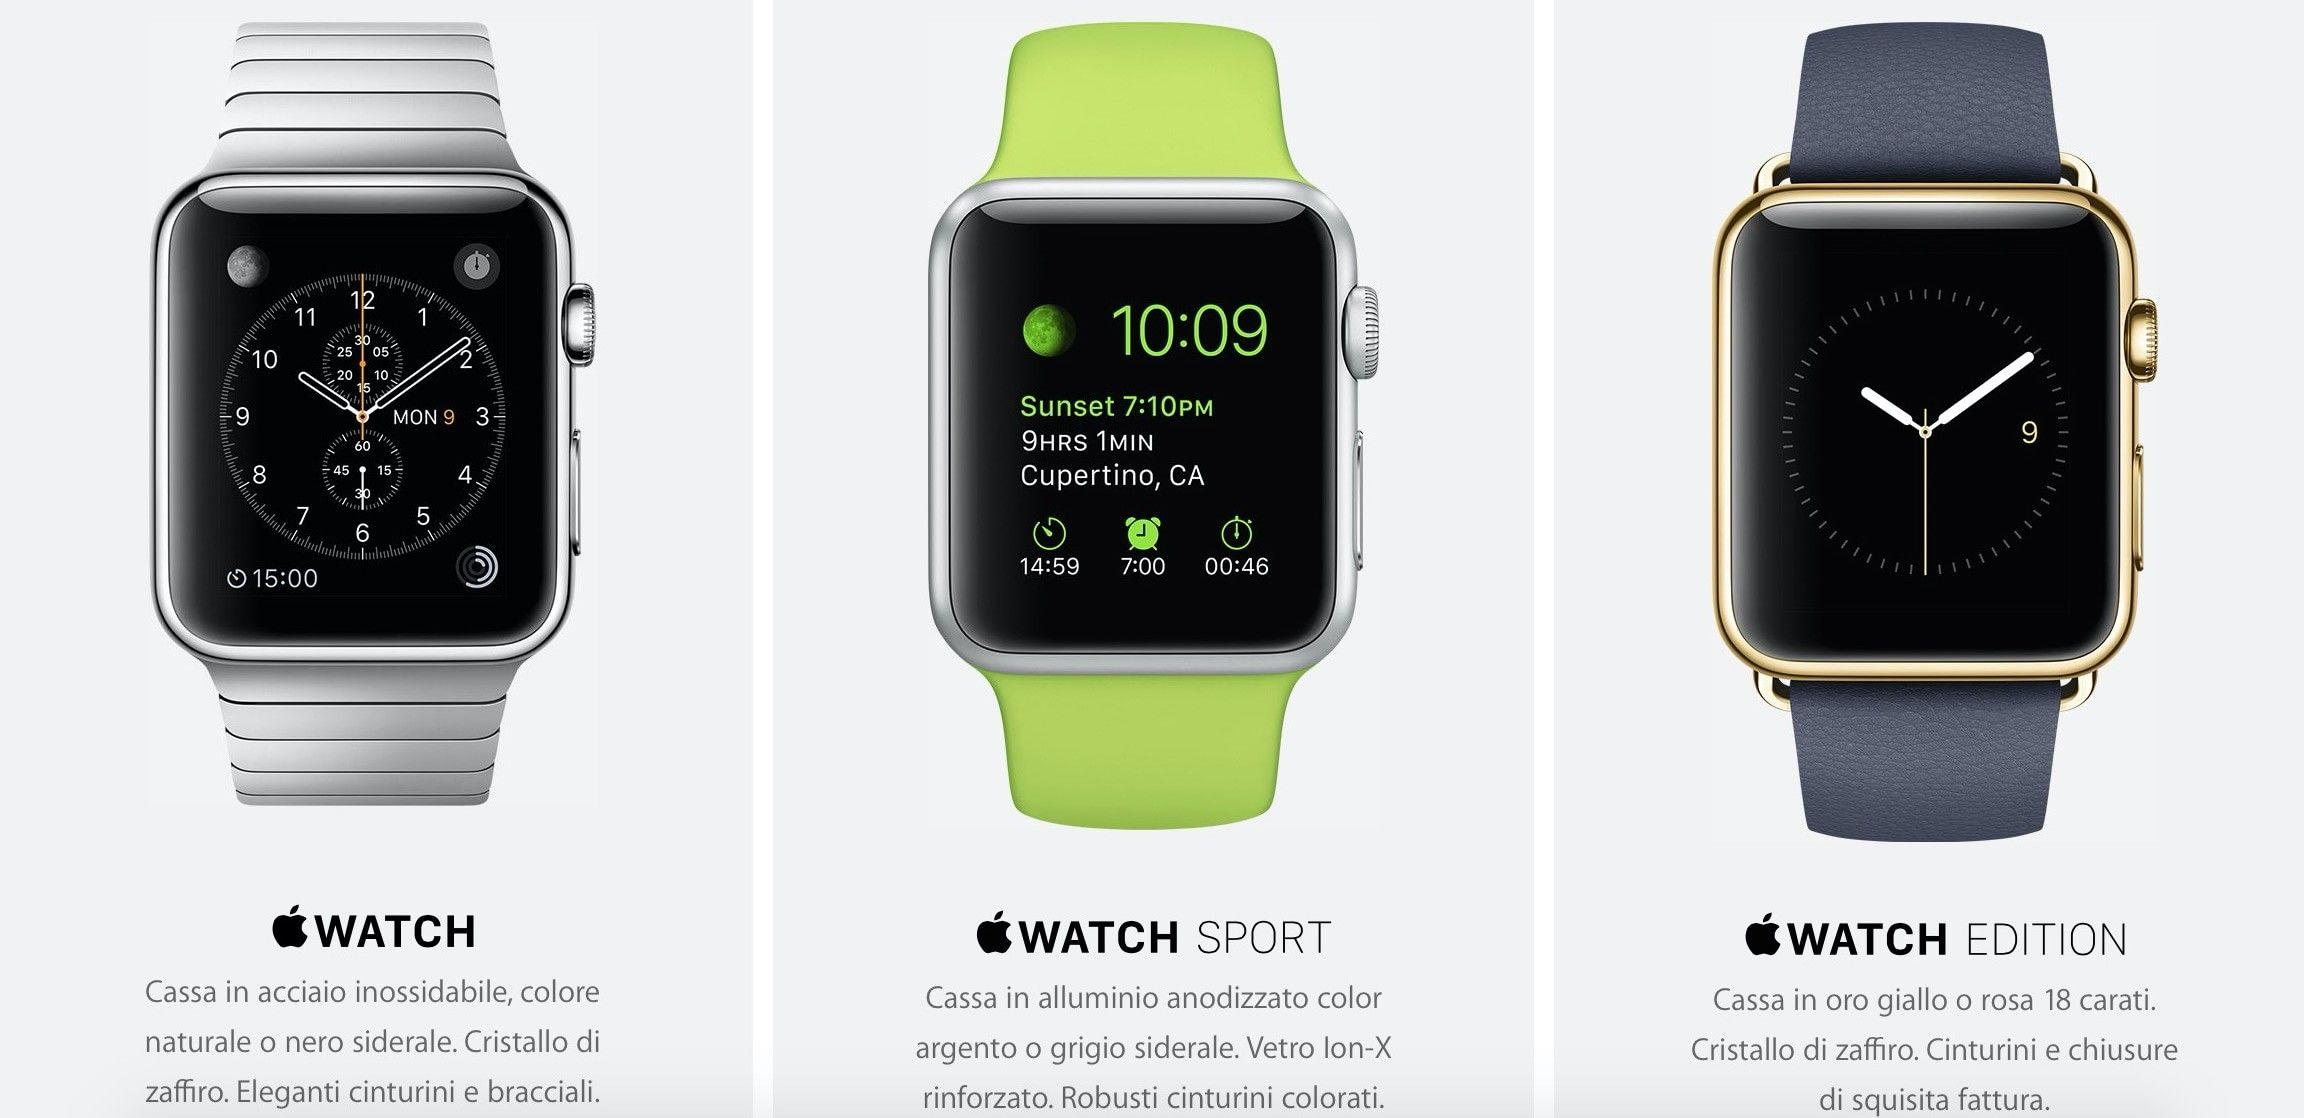 Versioni di Apple Watch disponibili